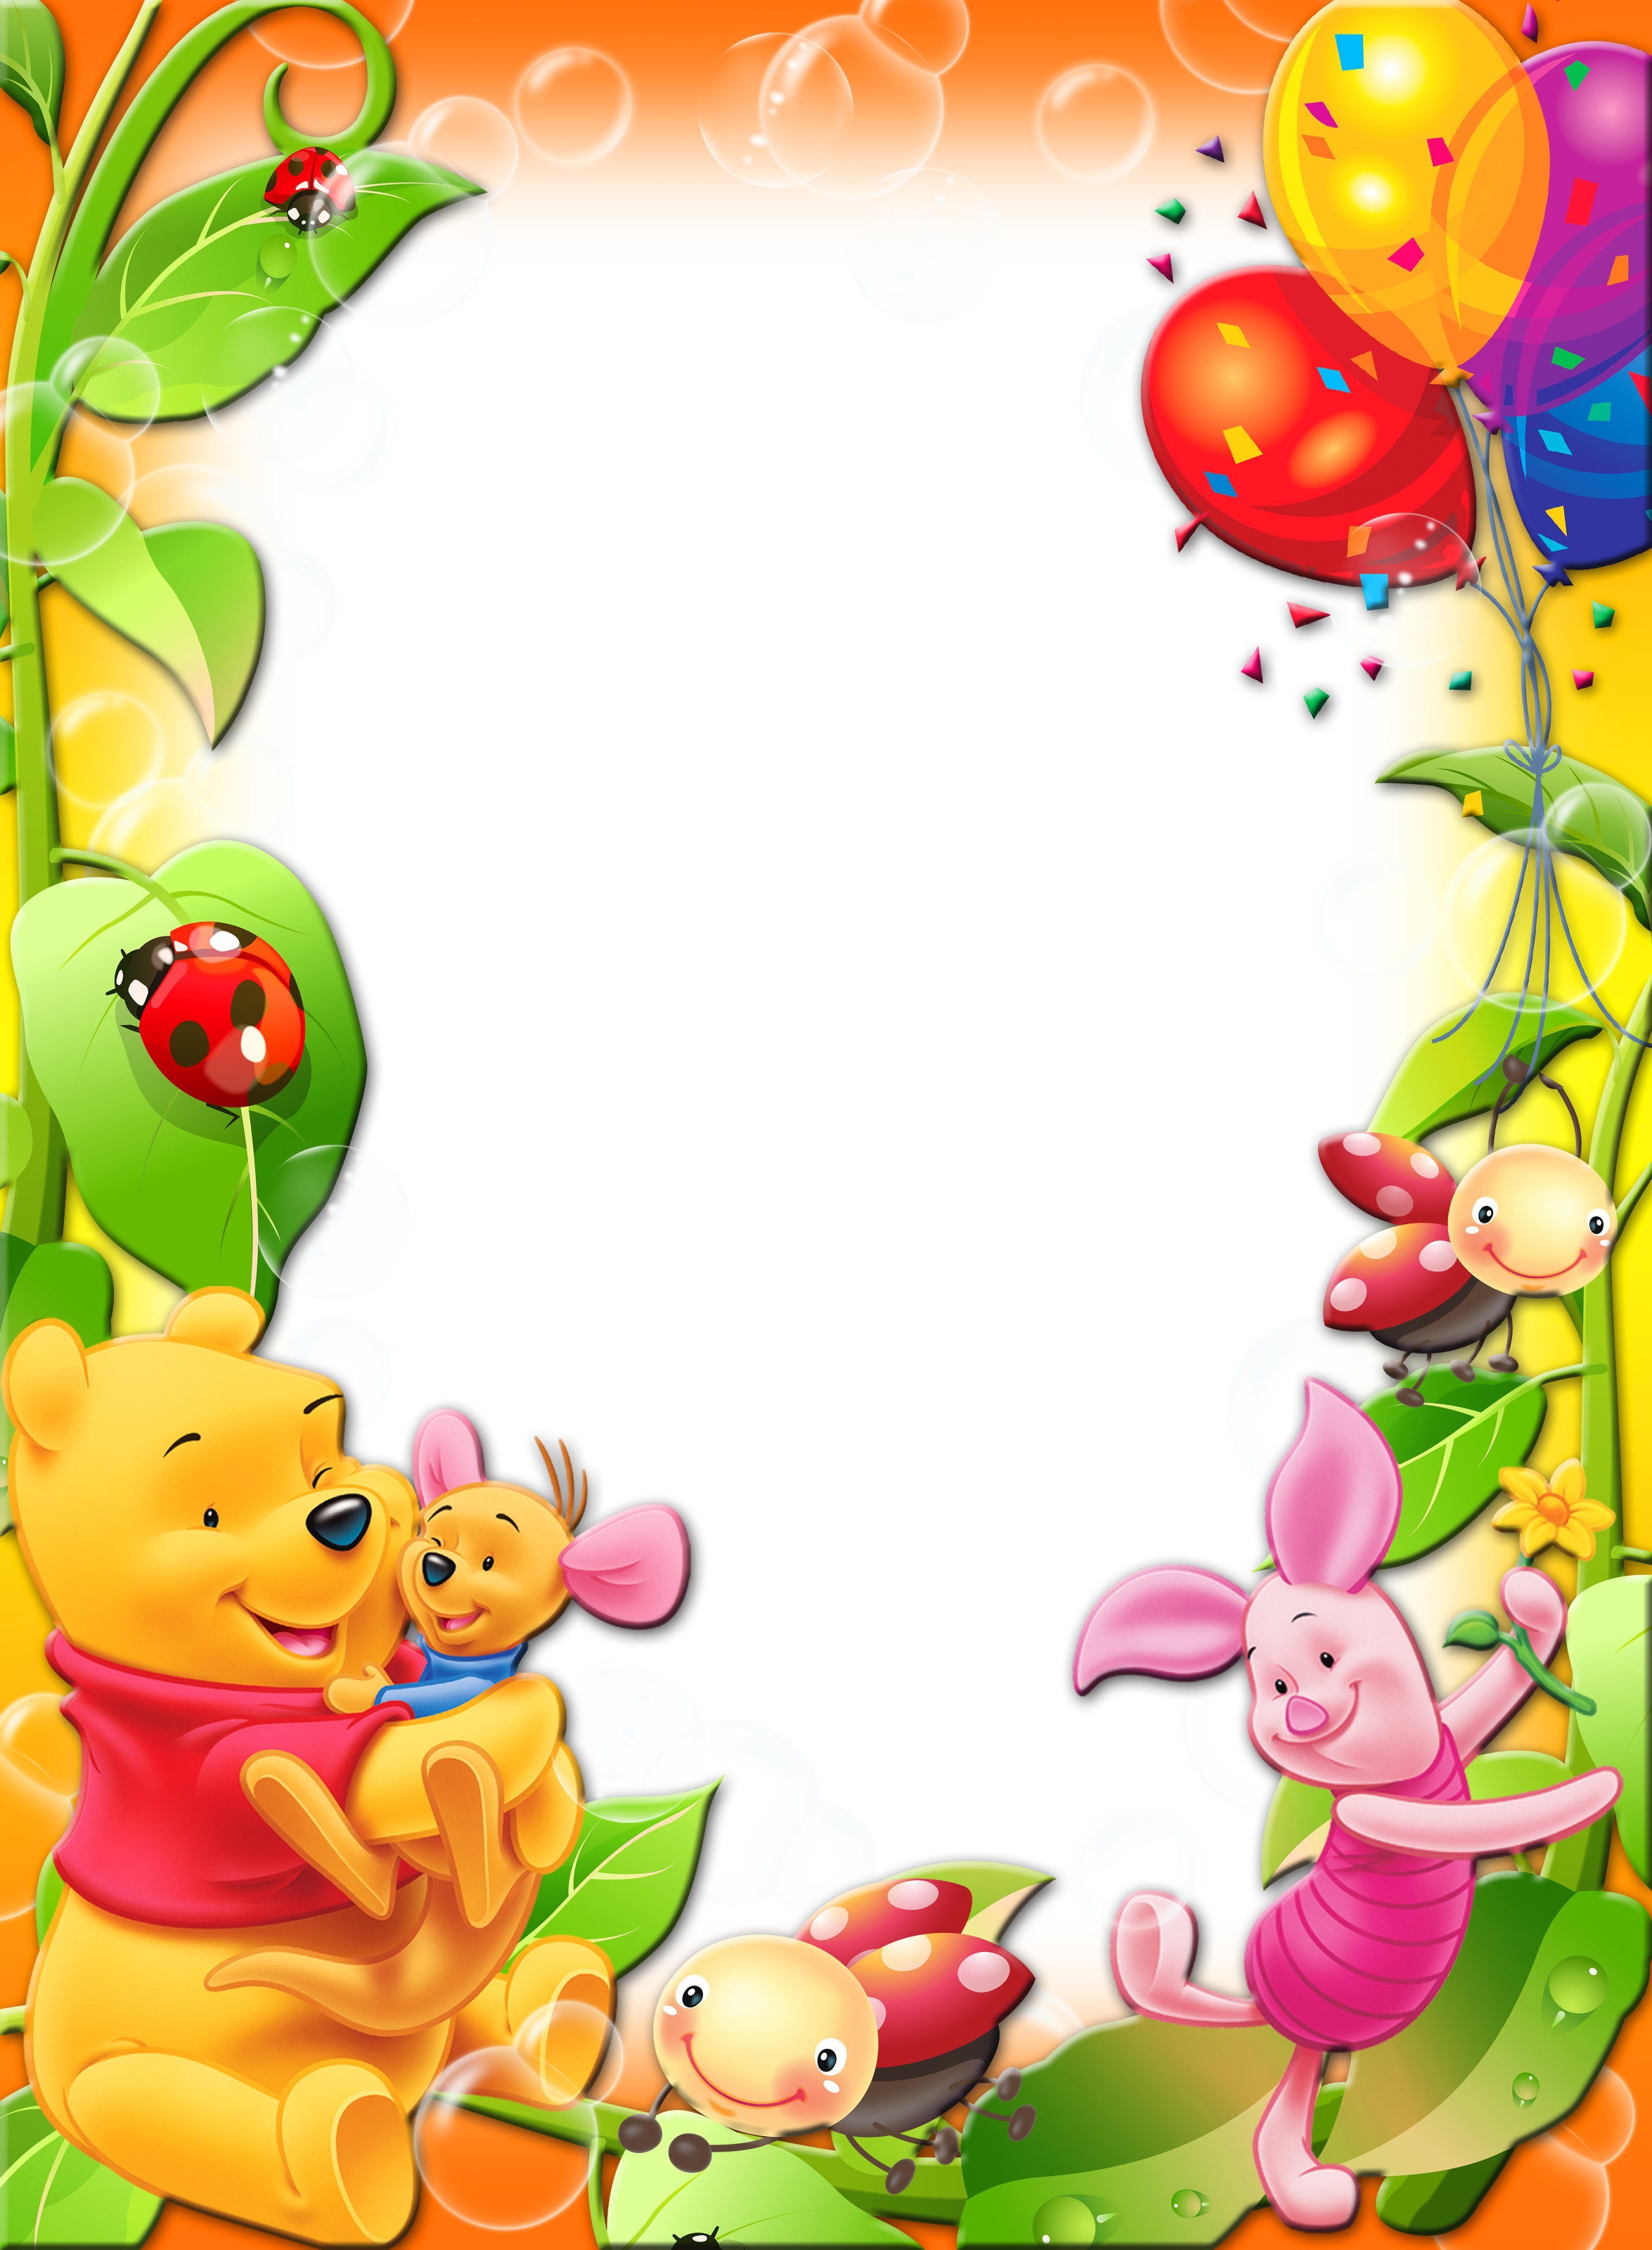 Frame clipart winnie the pooh The Transparent Winnie size Photo